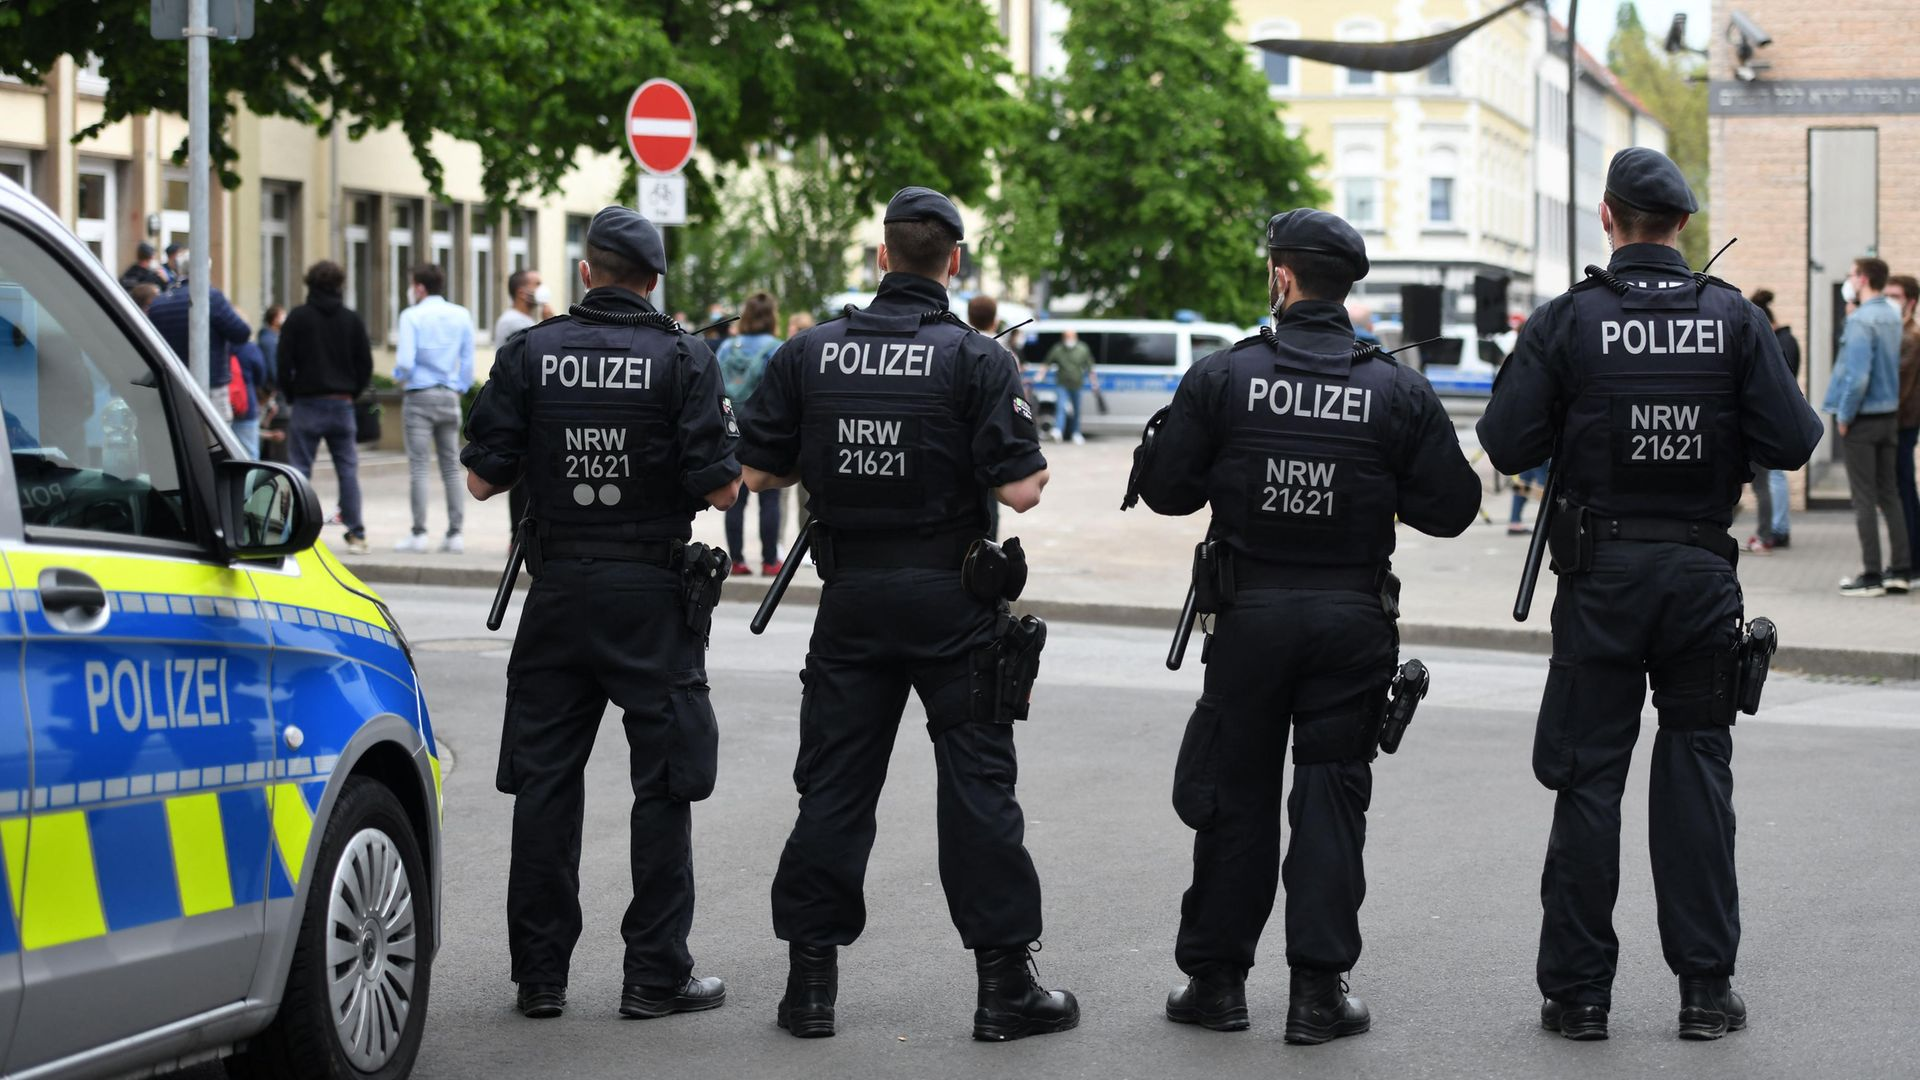 """Policemen stand in front of a synagogue in Gelsenkirchen, Germany. Officials vowed """"unwavering"""" protection of synagogues after scattered demonstrations over the conflict in the Middle East saw protesters shout anti-Israeli slogans and burn Israeli flags - Credit: AFP via Getty Images"""